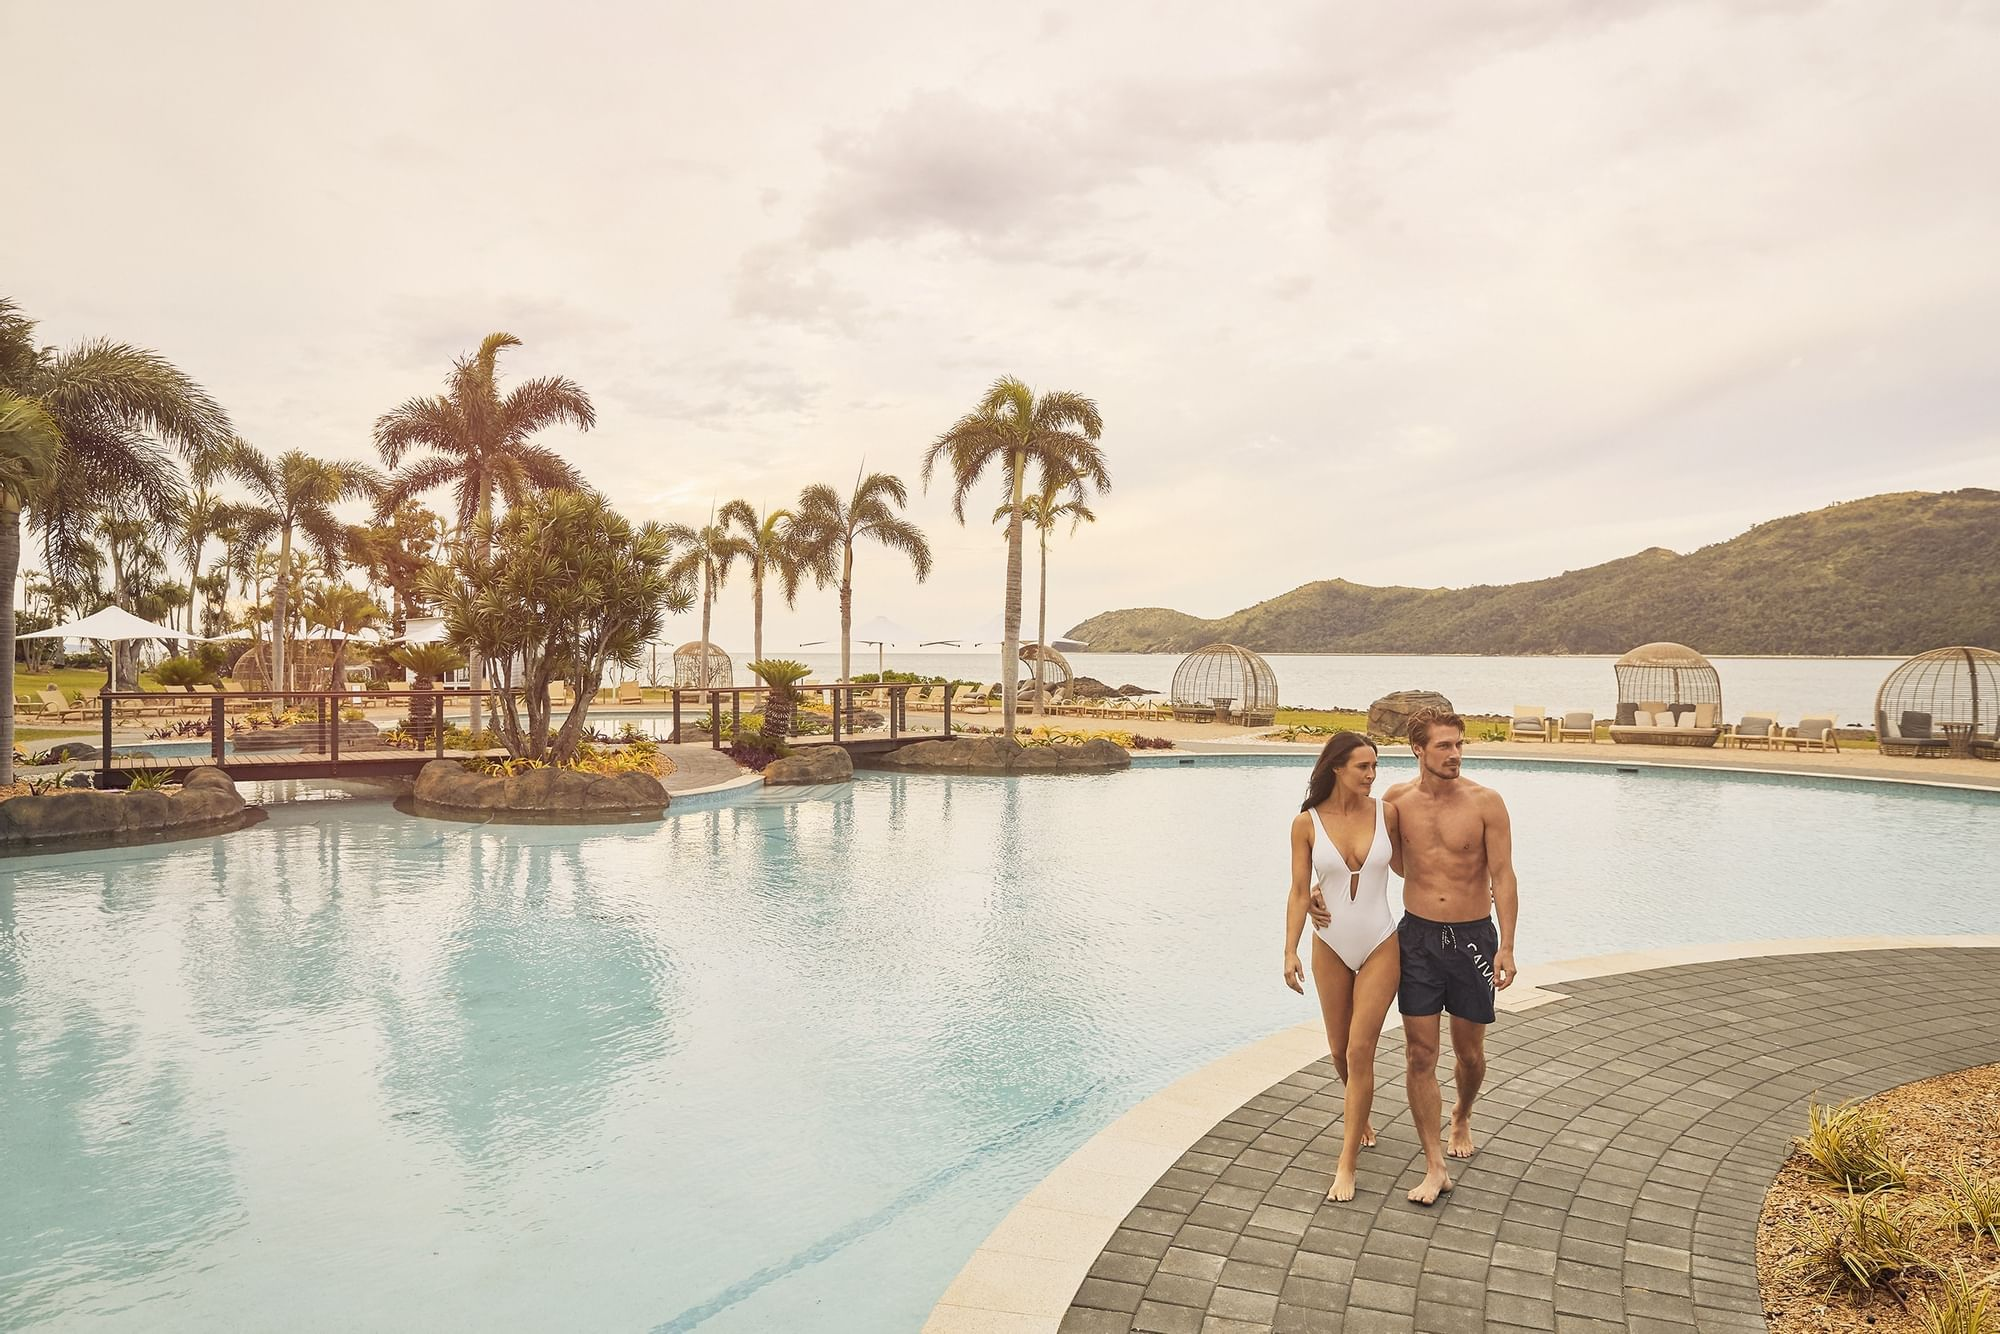 Couple spending time on pool deck at Daydream Island Resort